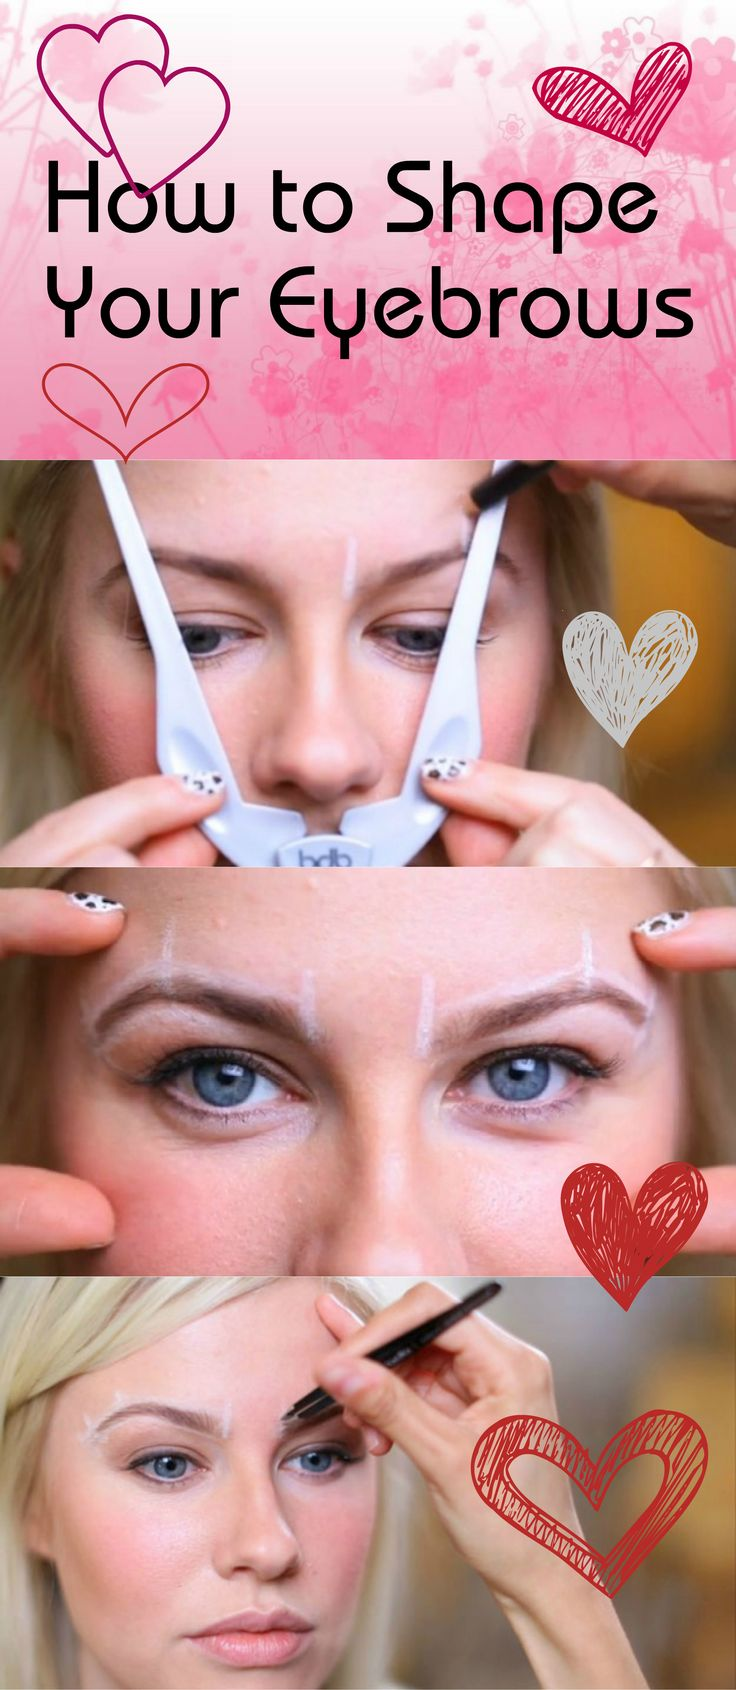 How to Find the Shape of Your Eyebrows   Easy Beauty Tips and Tricks by Makeup Tutorials at http://makeuptutorials.com/makeup-tutorial-how-to-shape-your-eyebrows